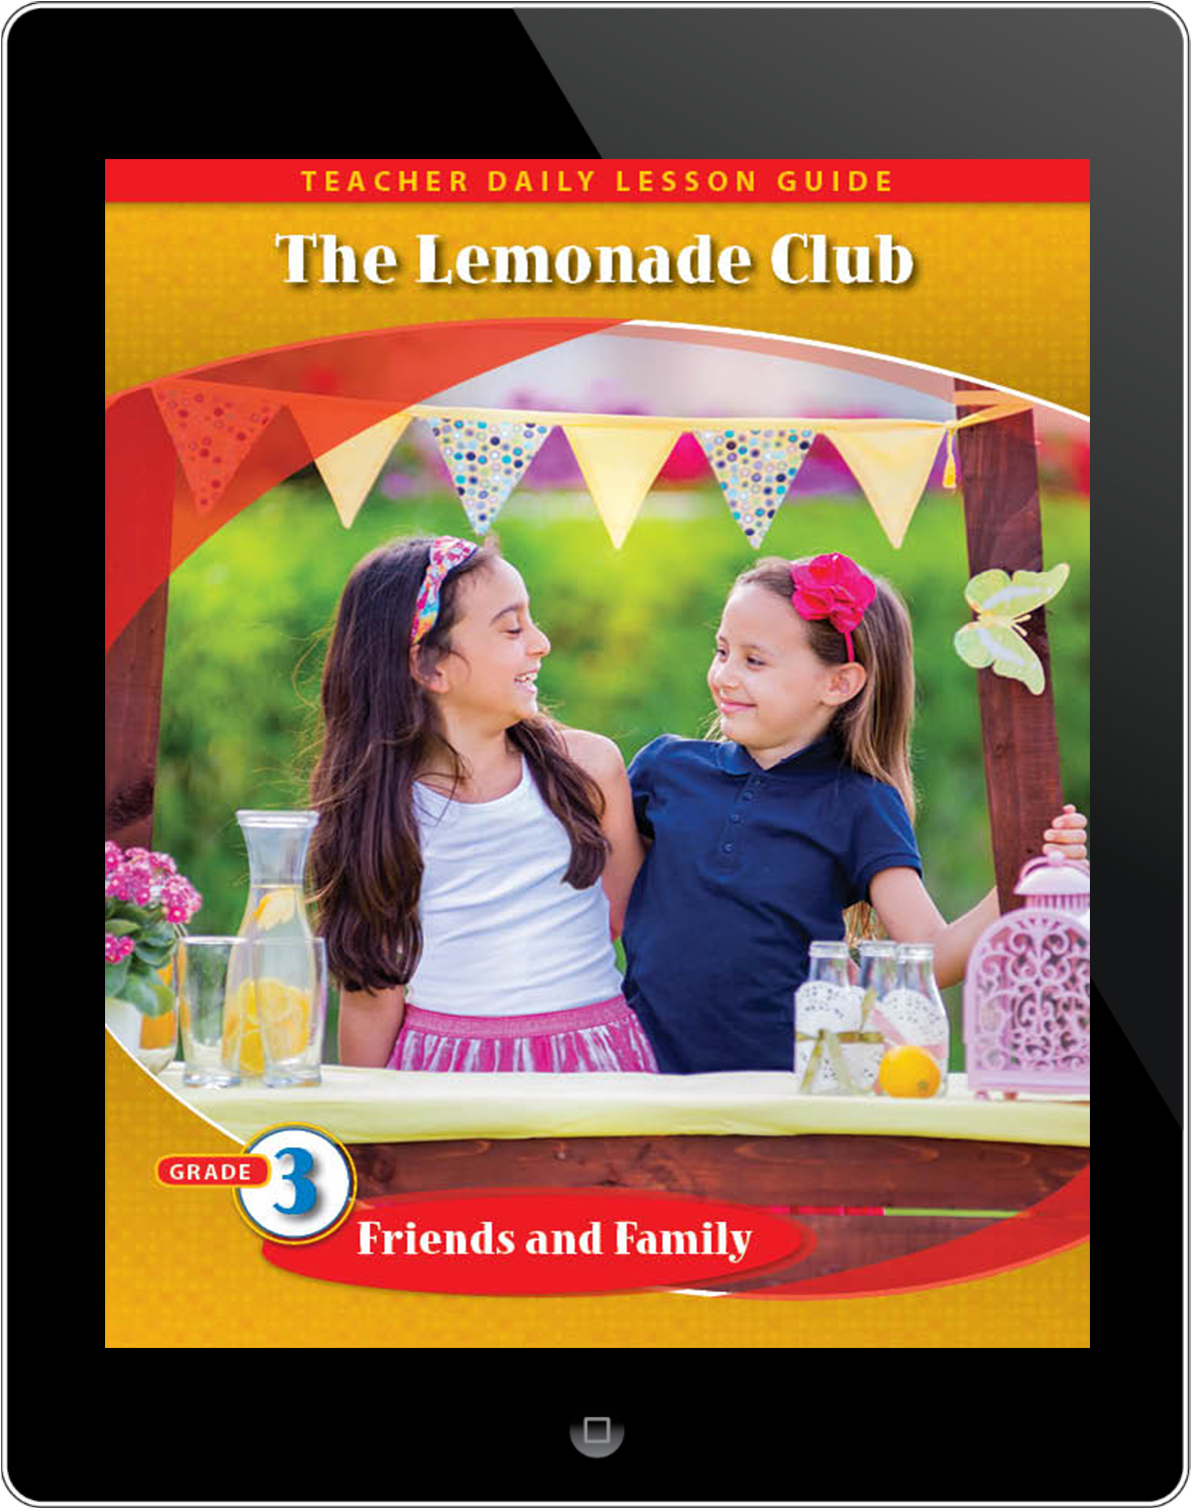 Pathways2.0 Grade 3 Friends and Family Unit: The Lemonade Club Daily Lesson Guide 5 Year License